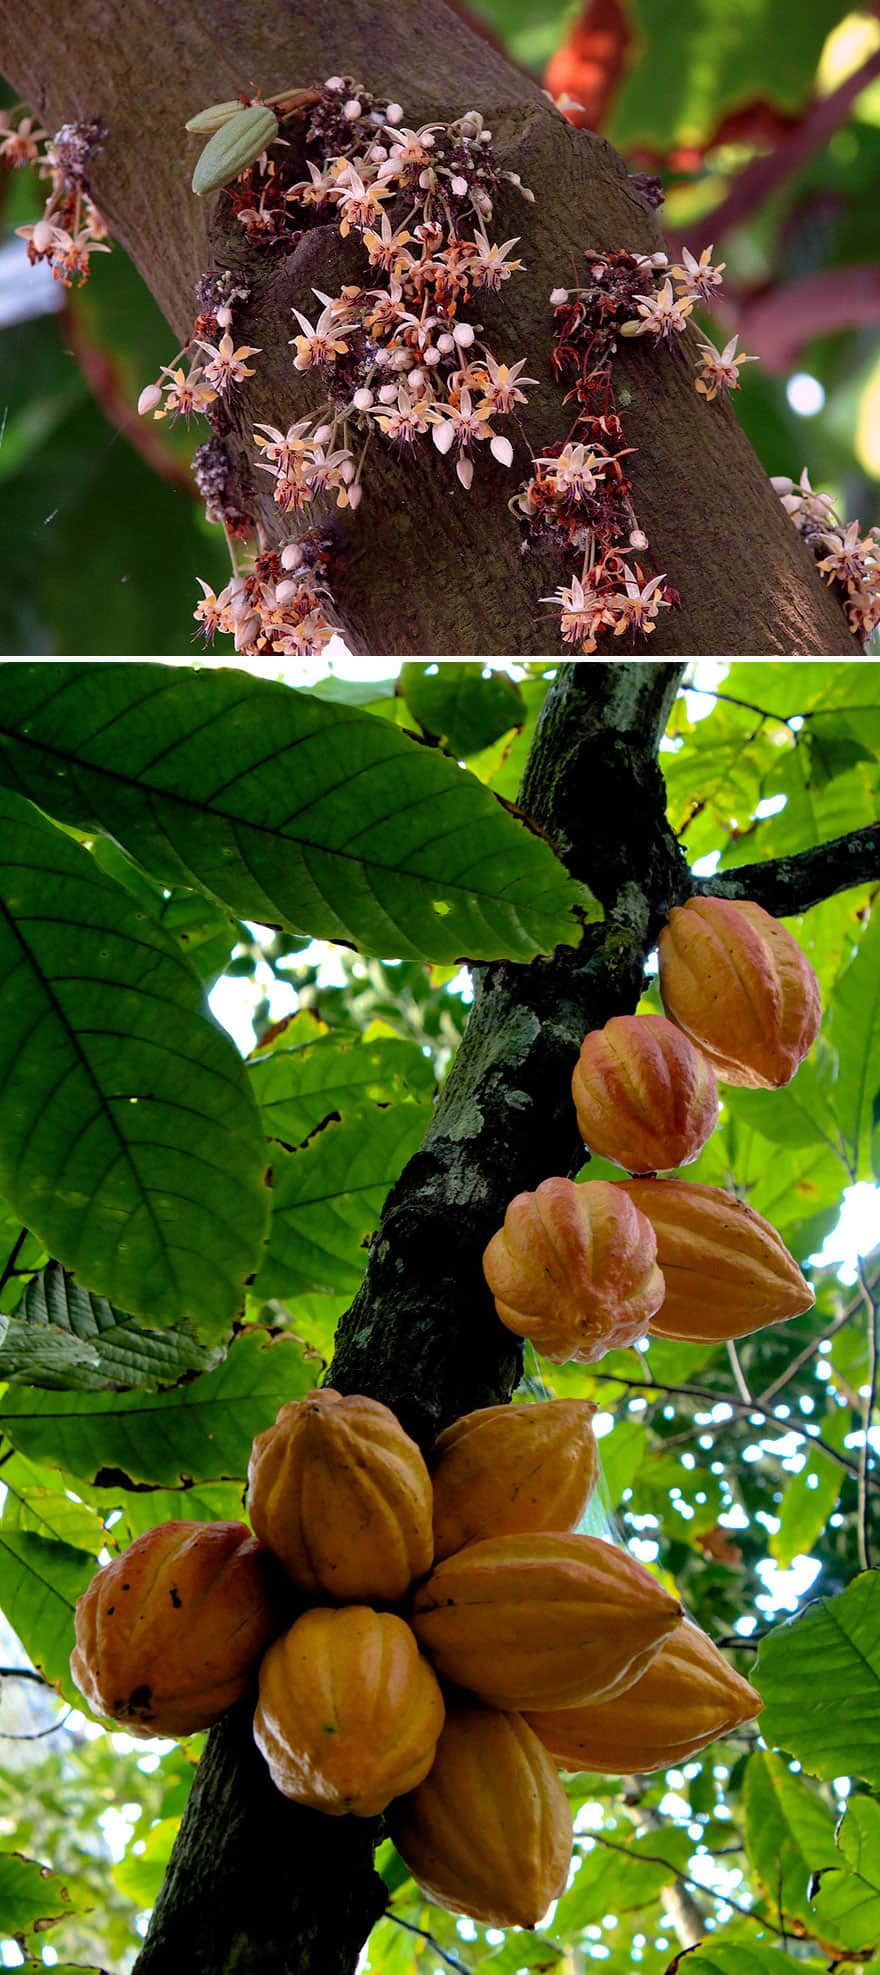 Cacao growing on a tree.